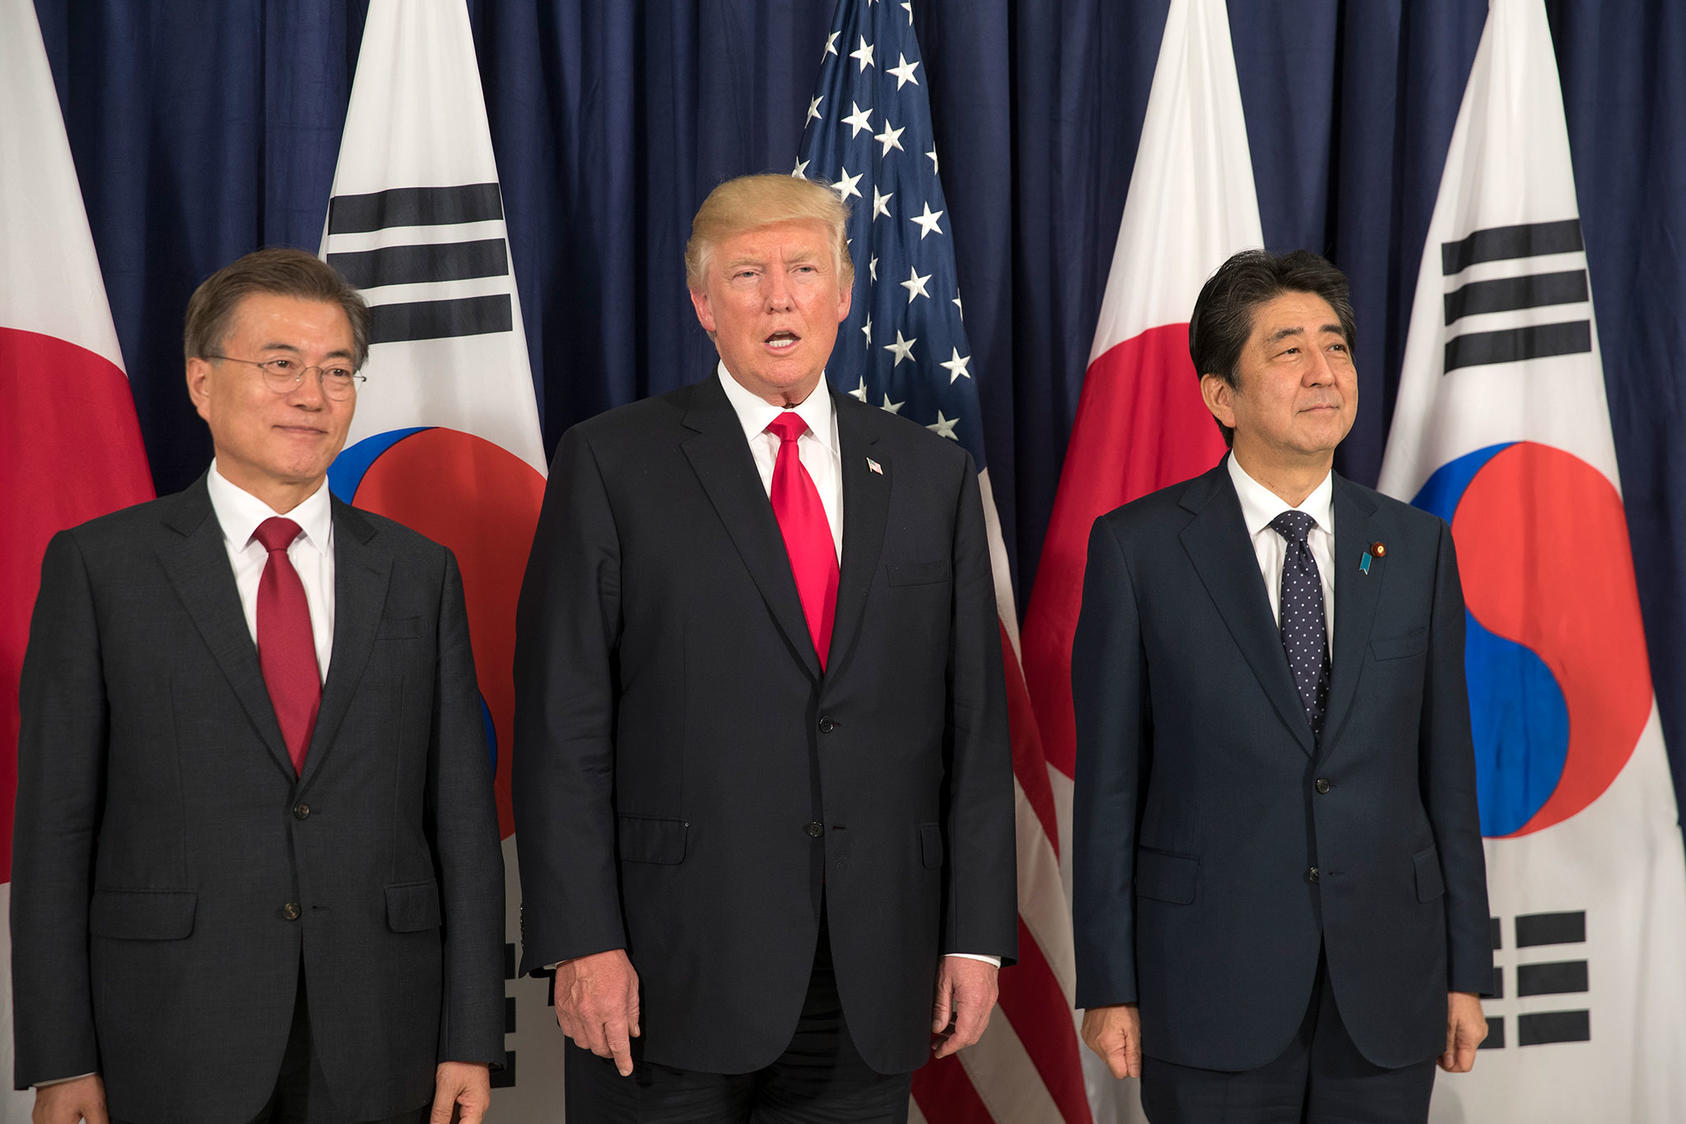 South Korean President Moon Jae-in, President Donald Trump and Japanese Prime Minister Shinzo Abe before the start of the Northeast Asia Security dinner. (Stephen Crowley/The New York Times)